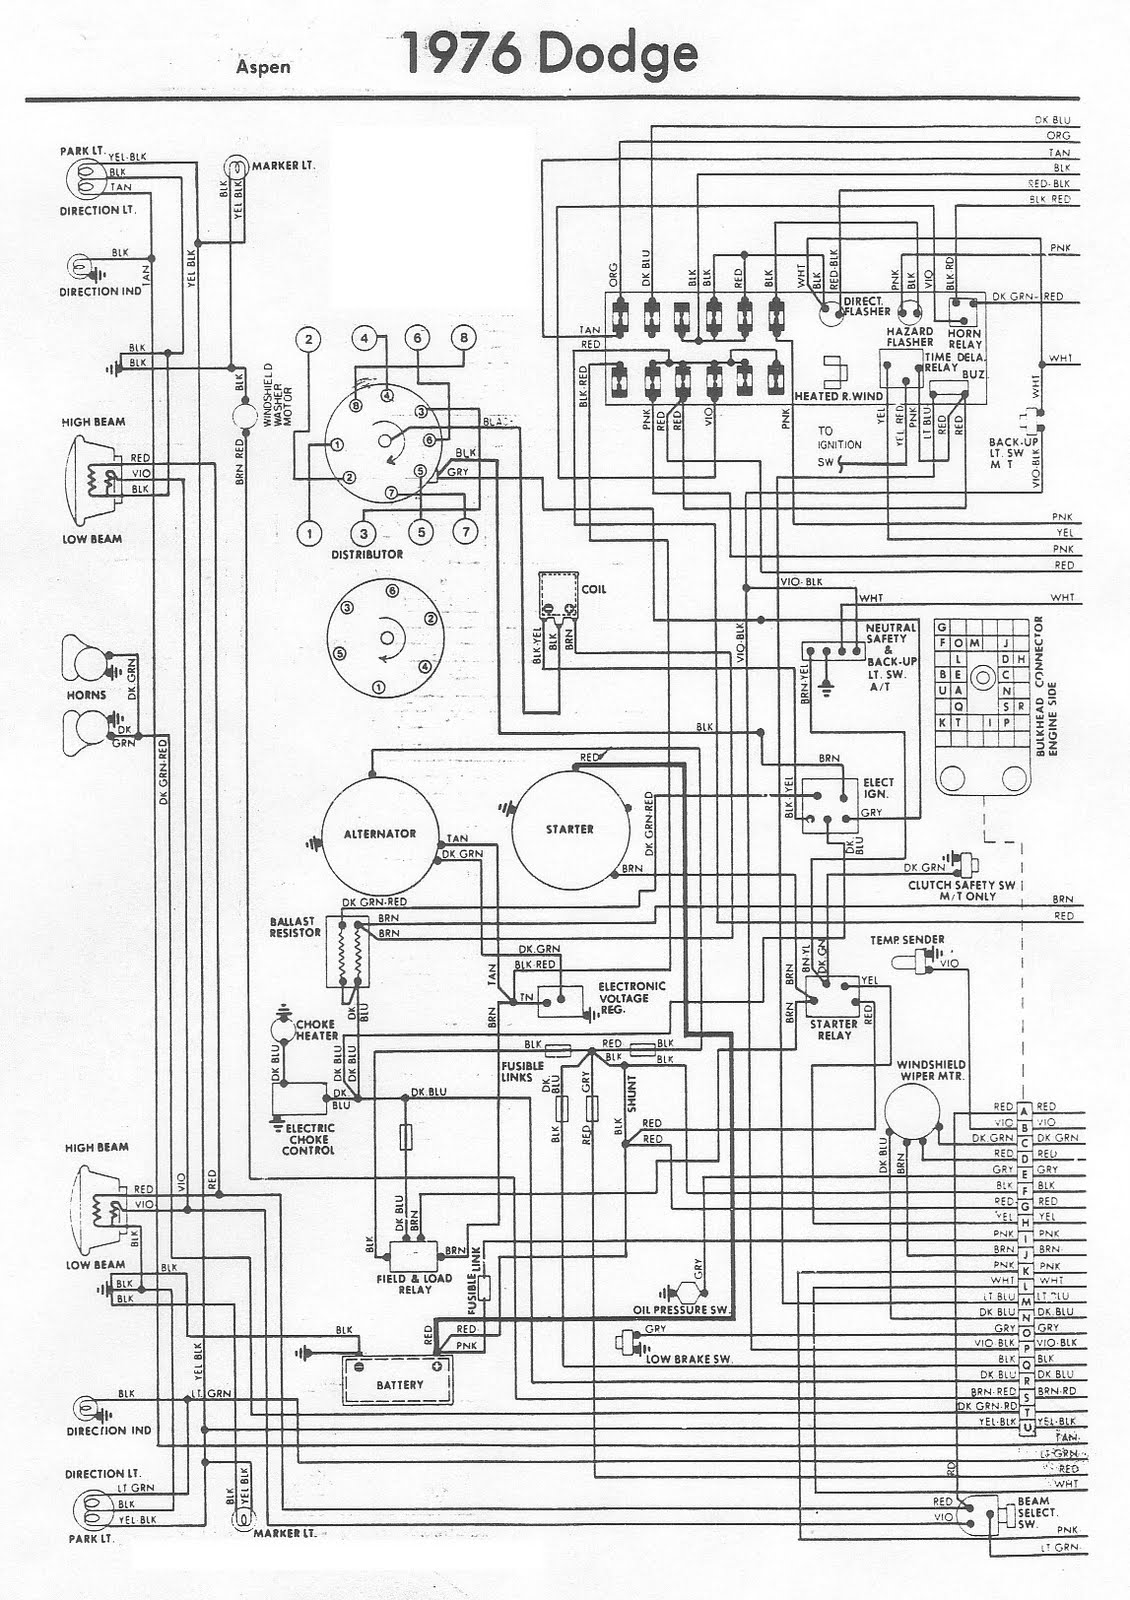 wiring diagram of 1976 dodge aspen circuit wiring diagrams wire rh linxglobal co 77 Chevy Truck Wiring Diagram 1979 Chevy Truck Wiring Diagram